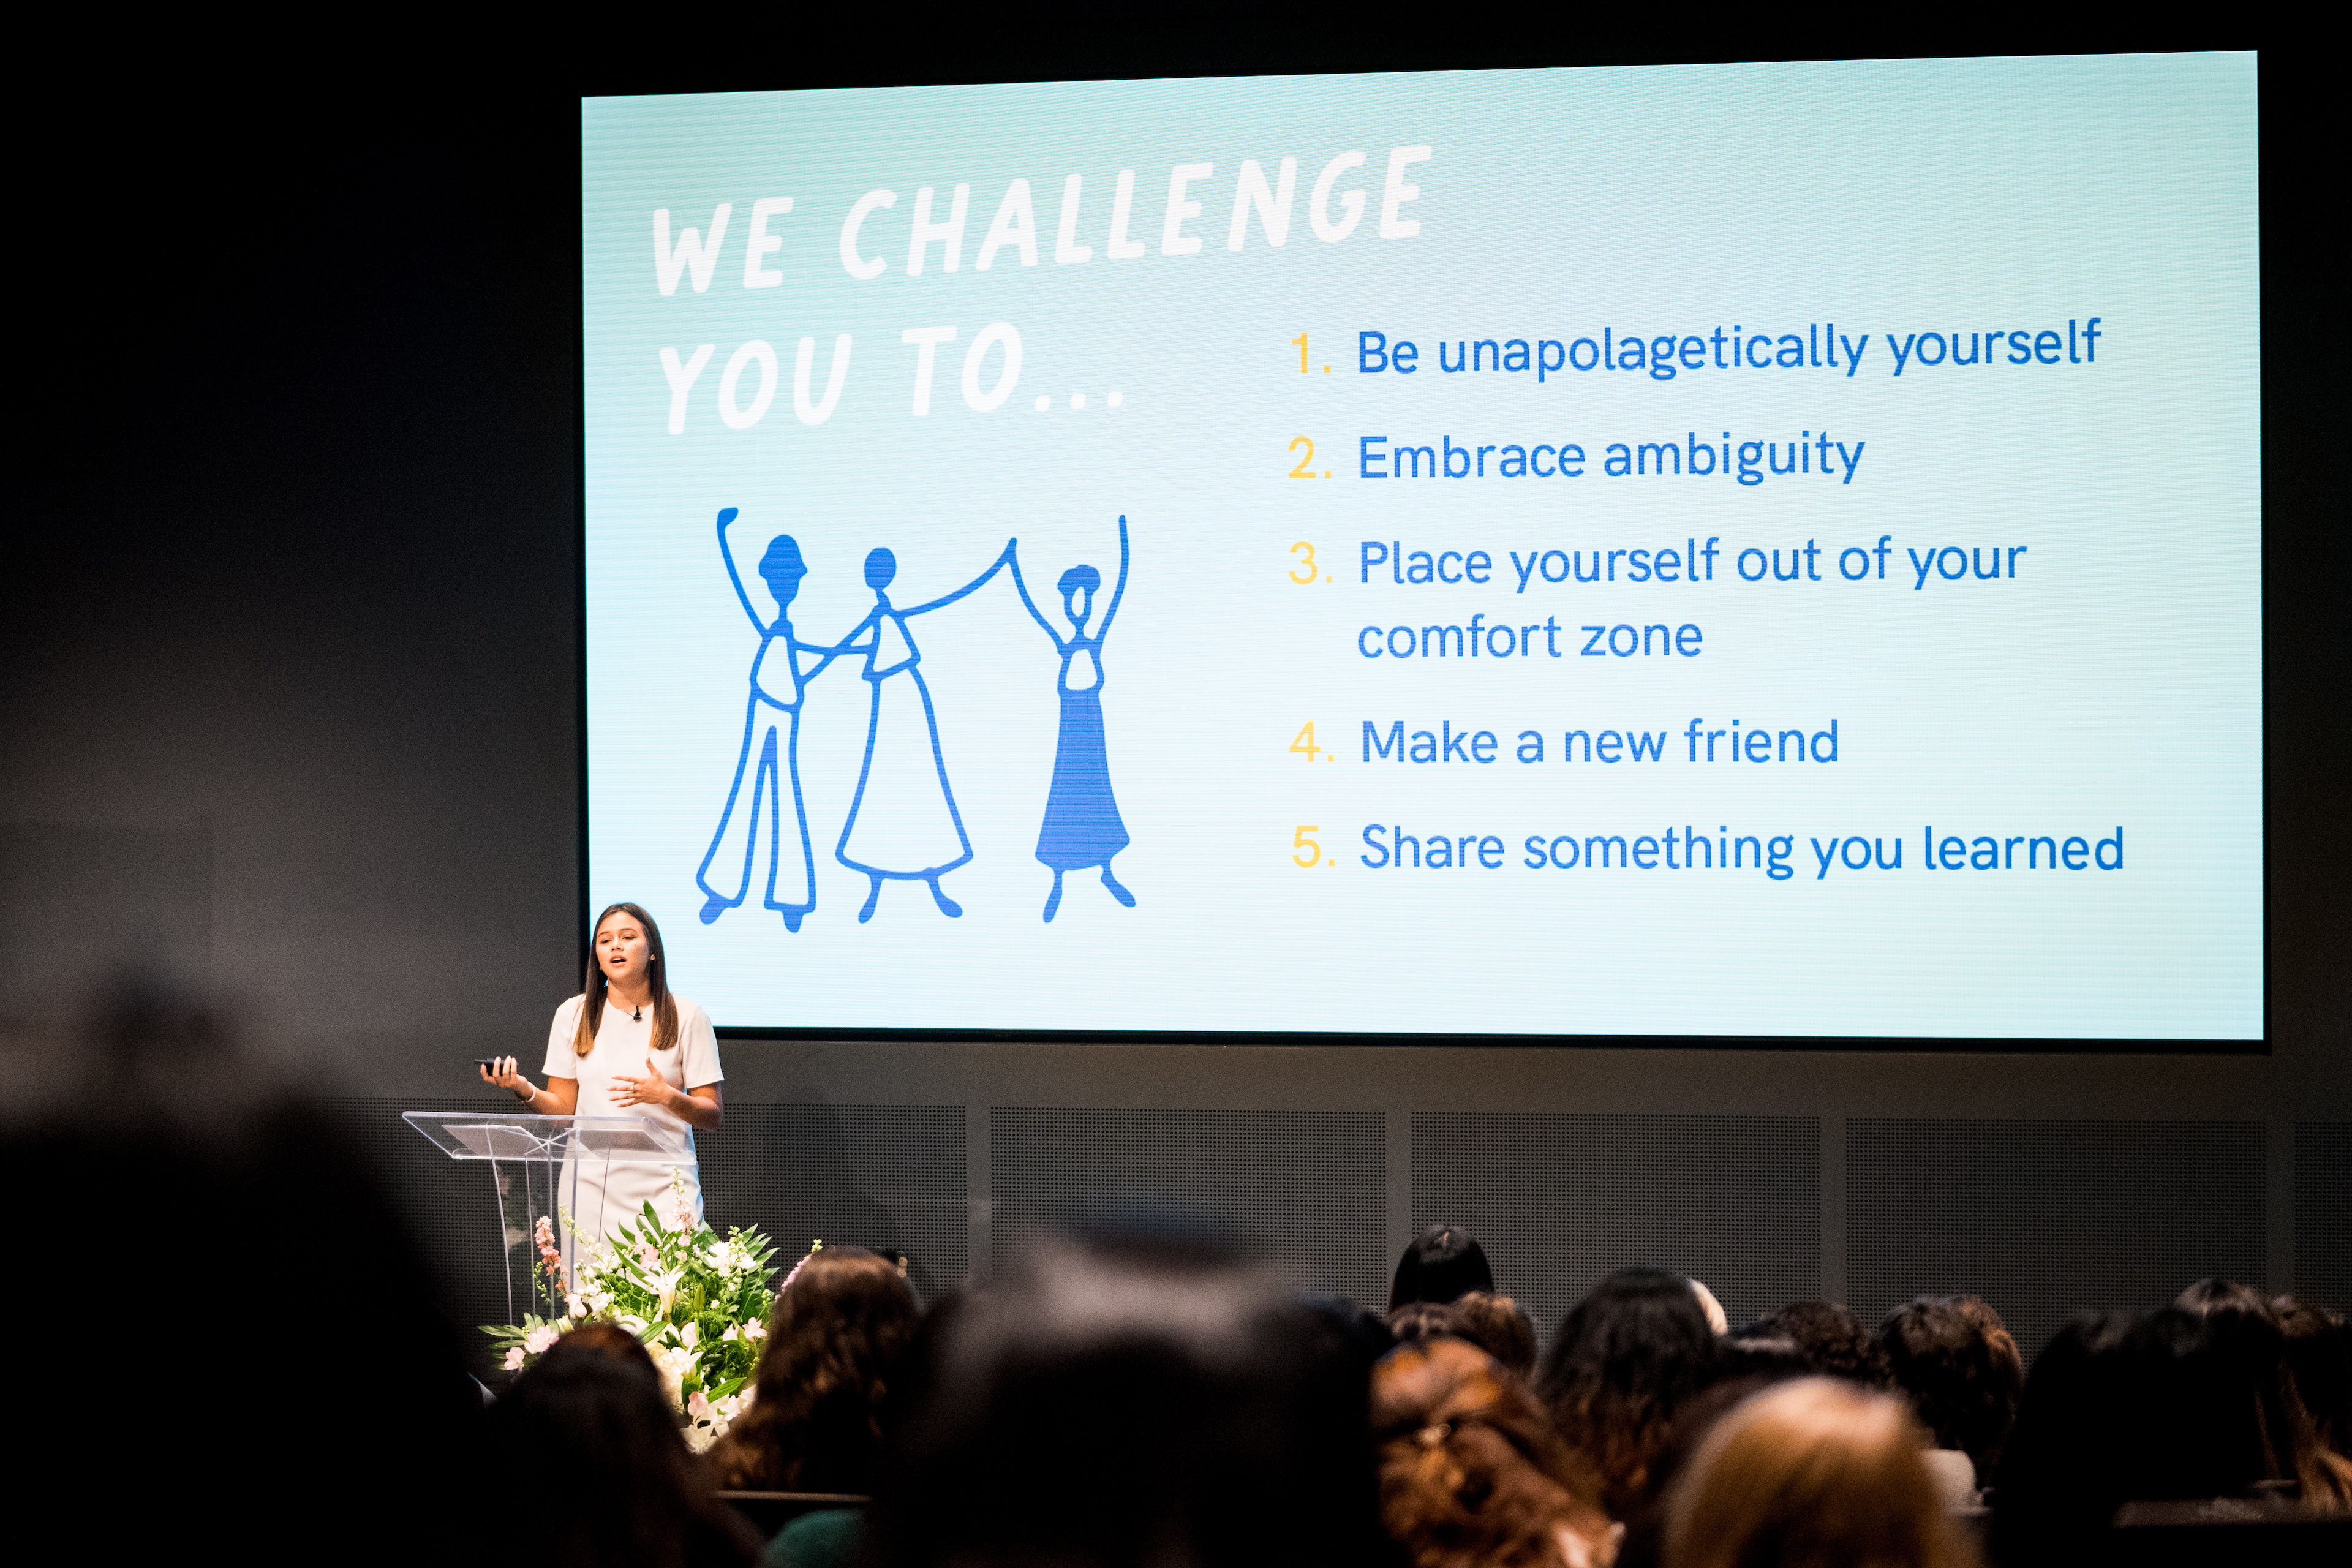 Woman giving a presentation to a crowd in a large auditorium.